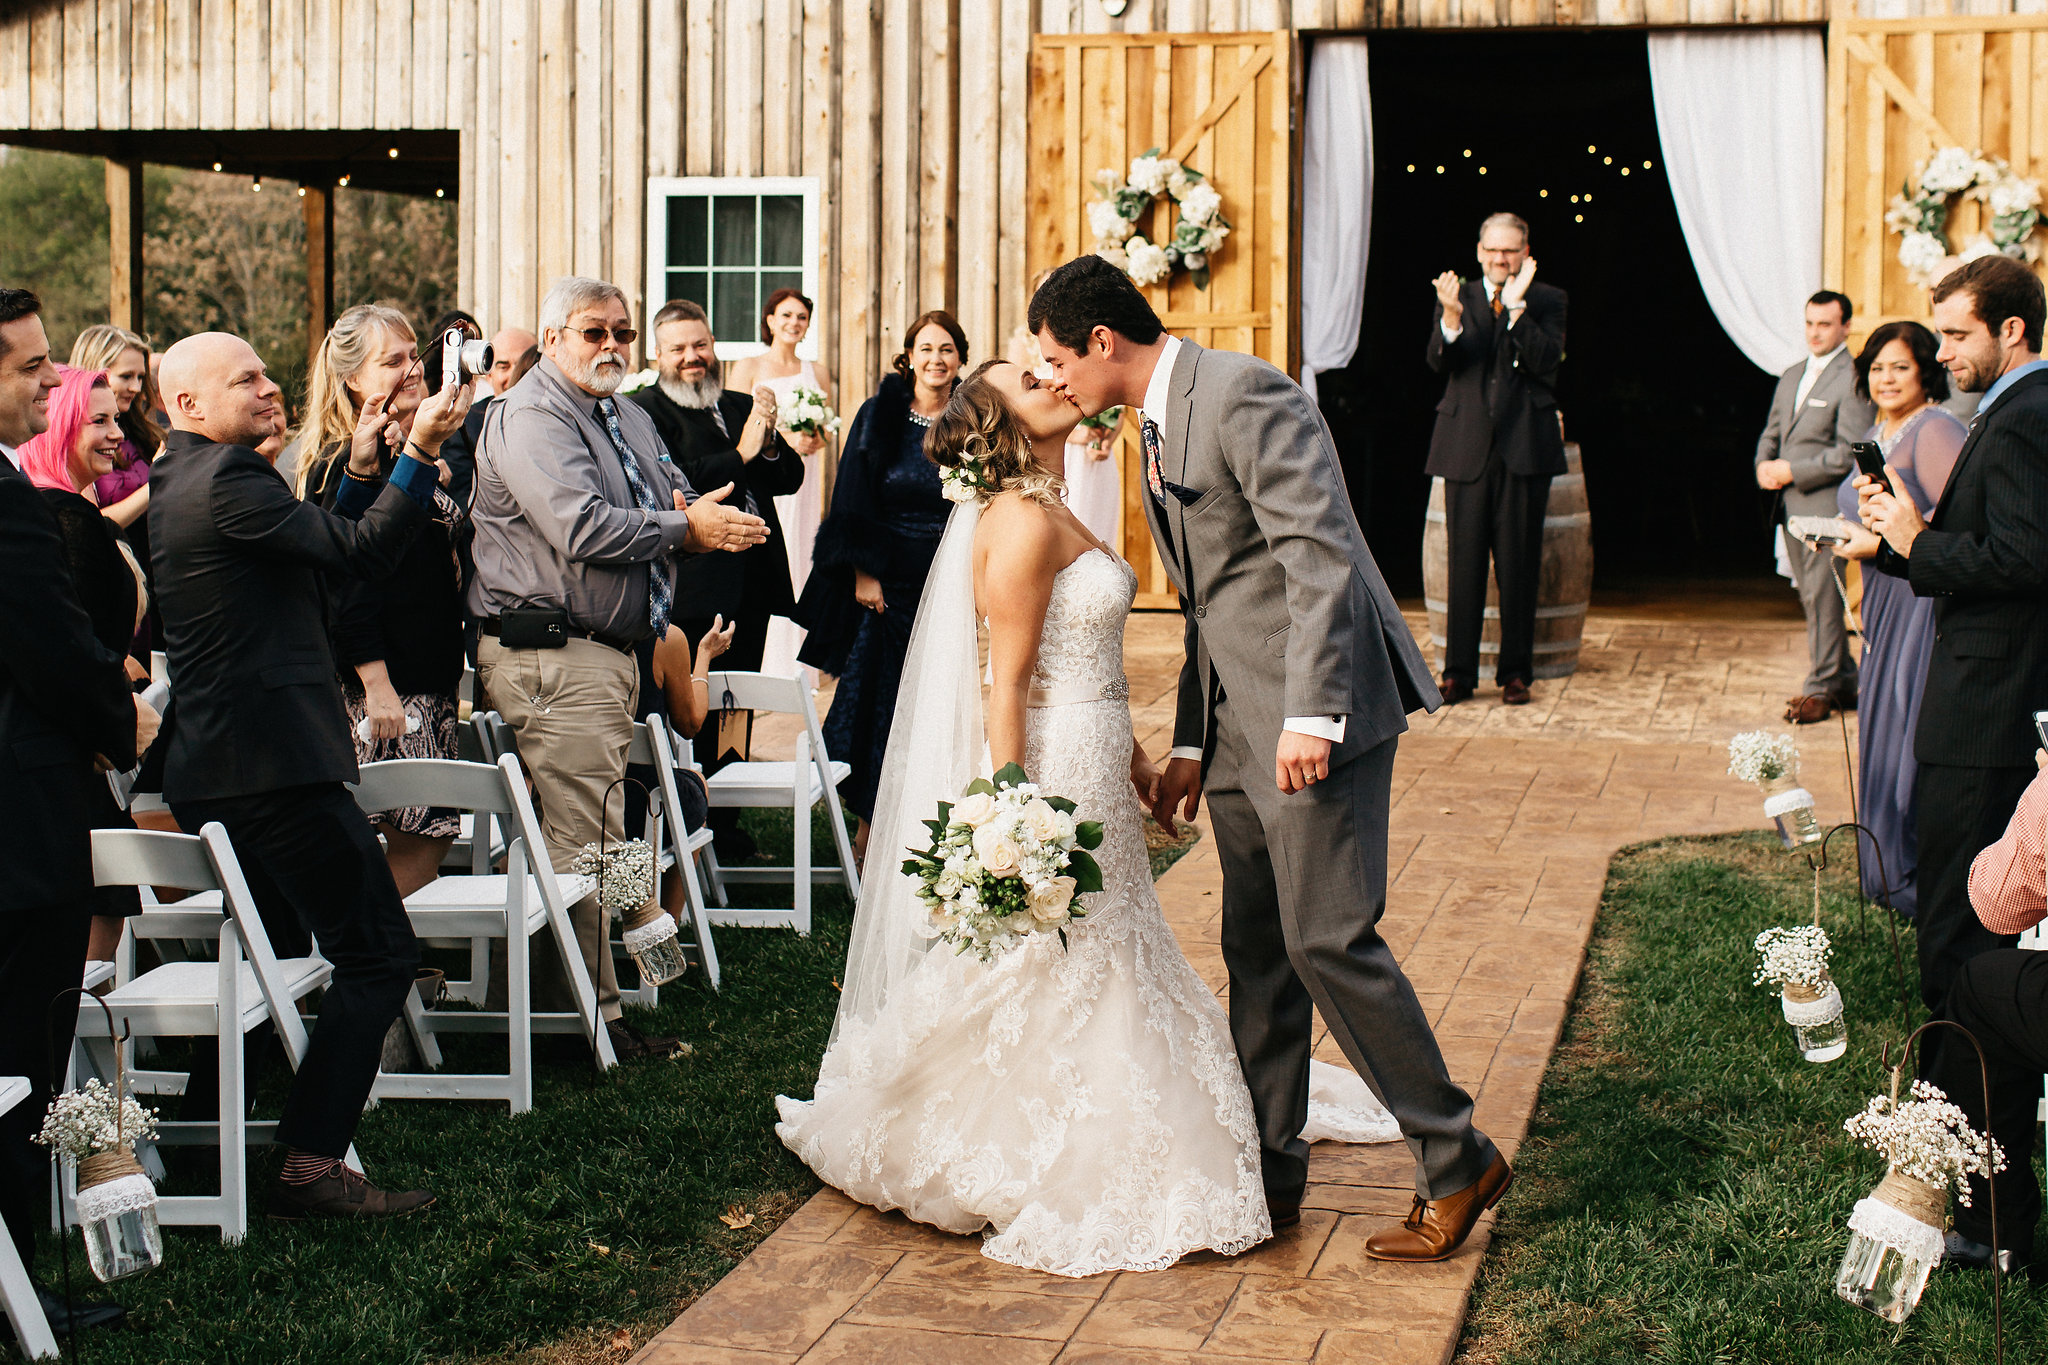 Ashley&NathanMarried2017-11-10at19.26.54PM60.jpg